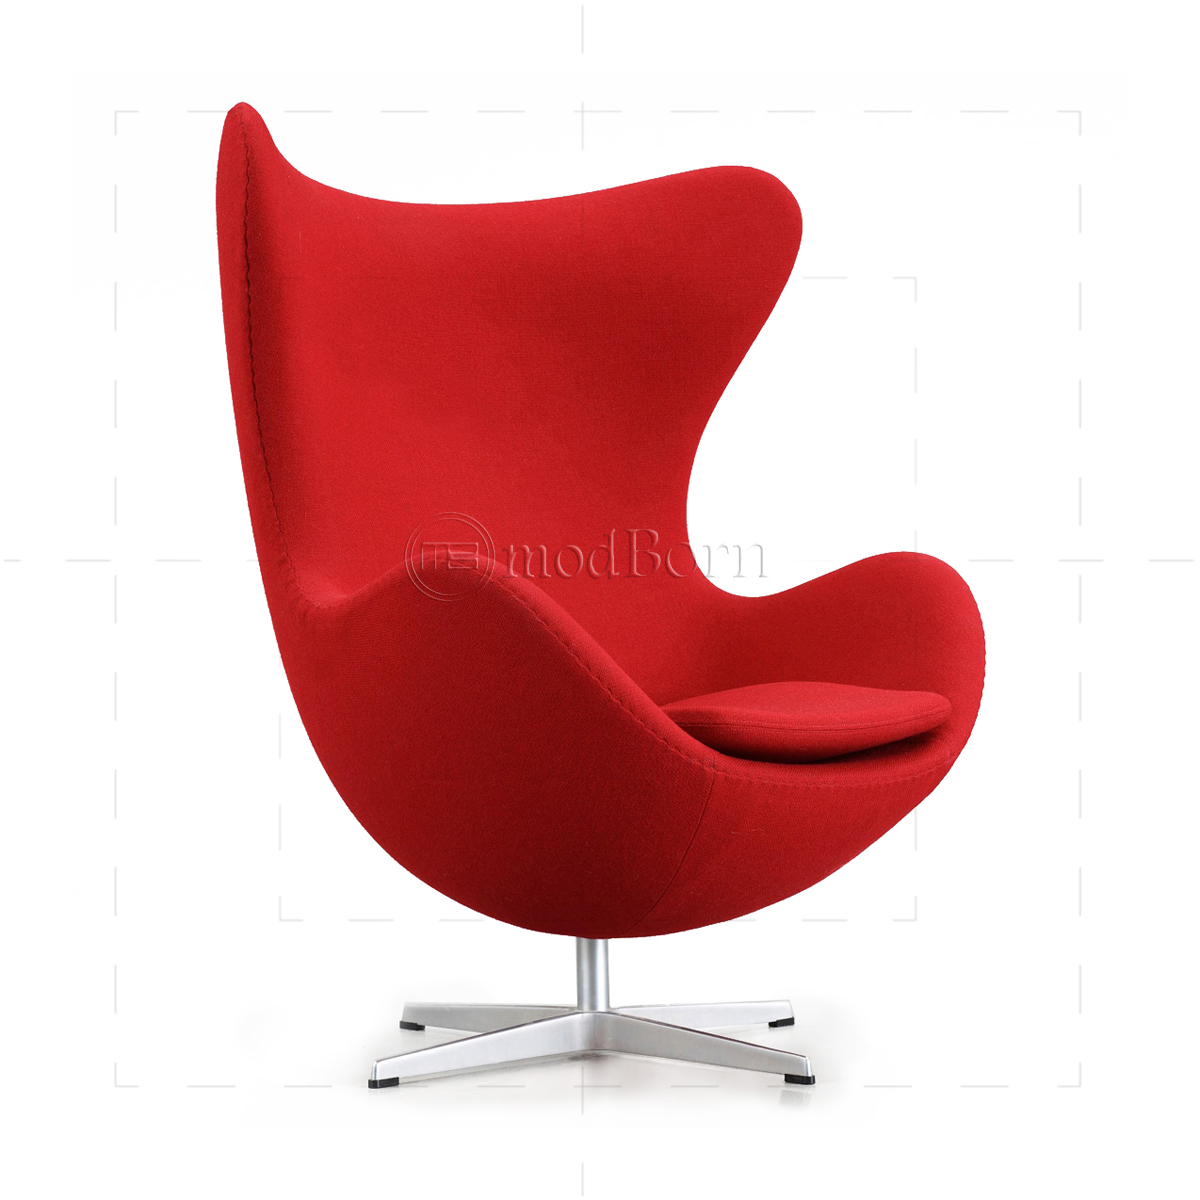 Arne Jacobsen Style Egg Cashmere Wool Chair RED